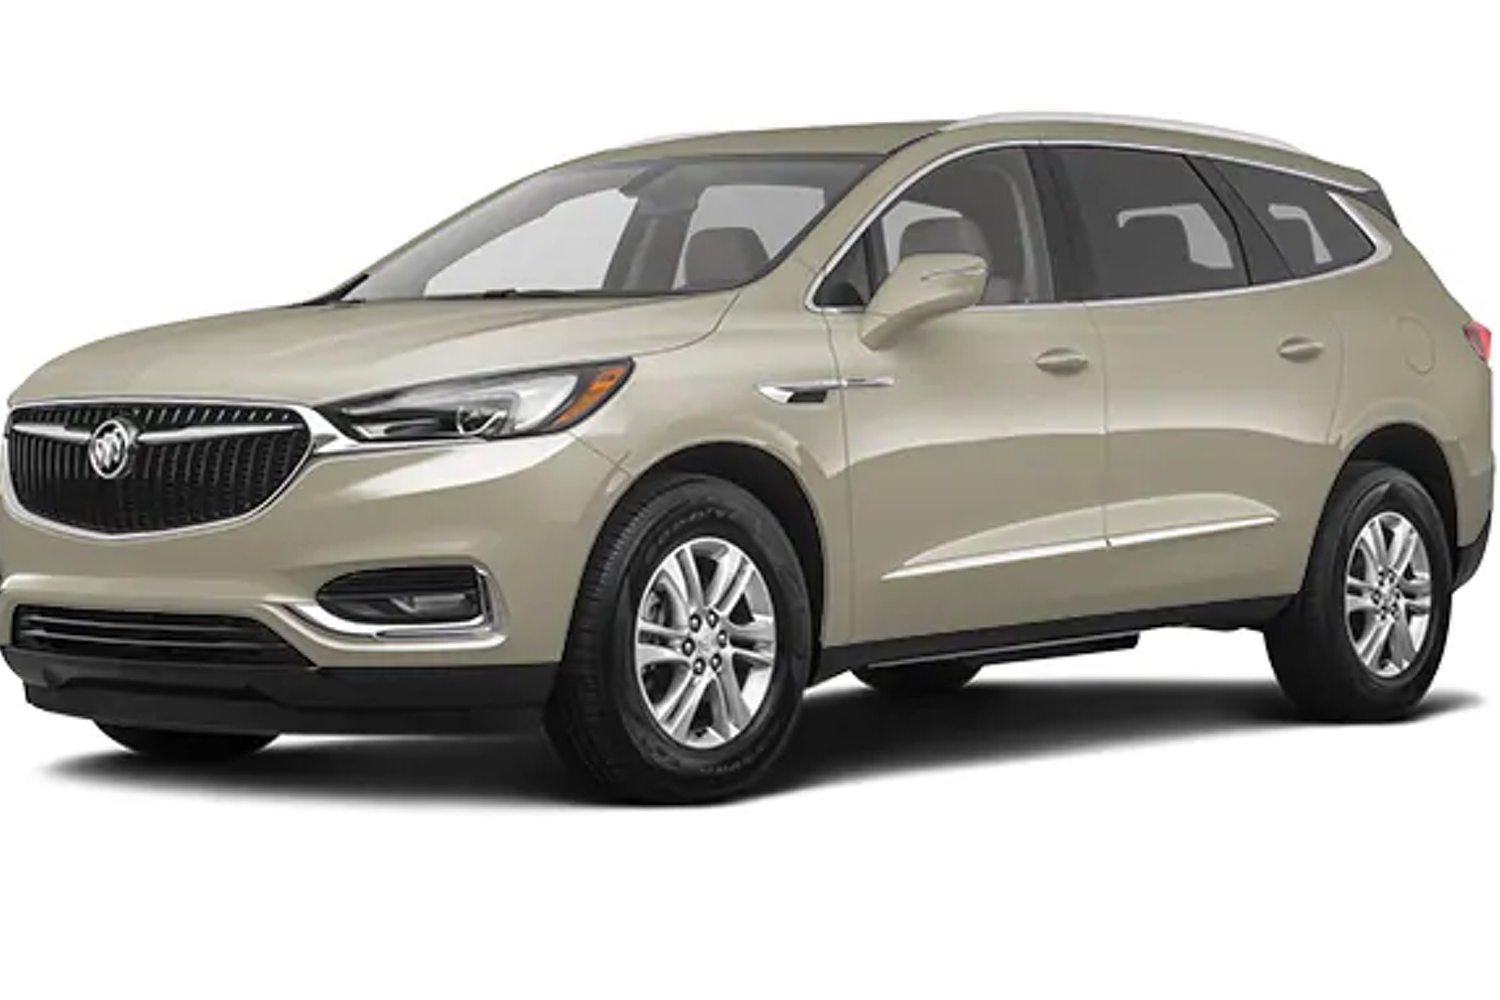 2020 Buick Enclave Exterior Colors | Gm Authority New 2022 Buick Enclave Discounts, Discontinued, Exterior Colors